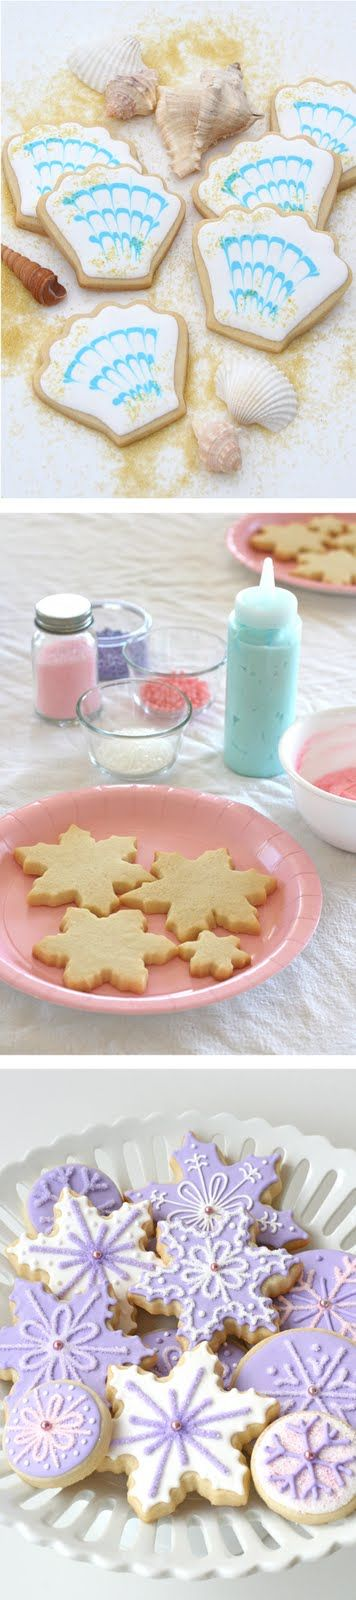 Rolled Sugar Cookies 3 cups all-purpose flour 1 teaspoon baking powder 1 cup (2 sticks) unsalted butter, room temperature 1 cup sugar 1 large egg 1 teaspoon good quality vanilla extract